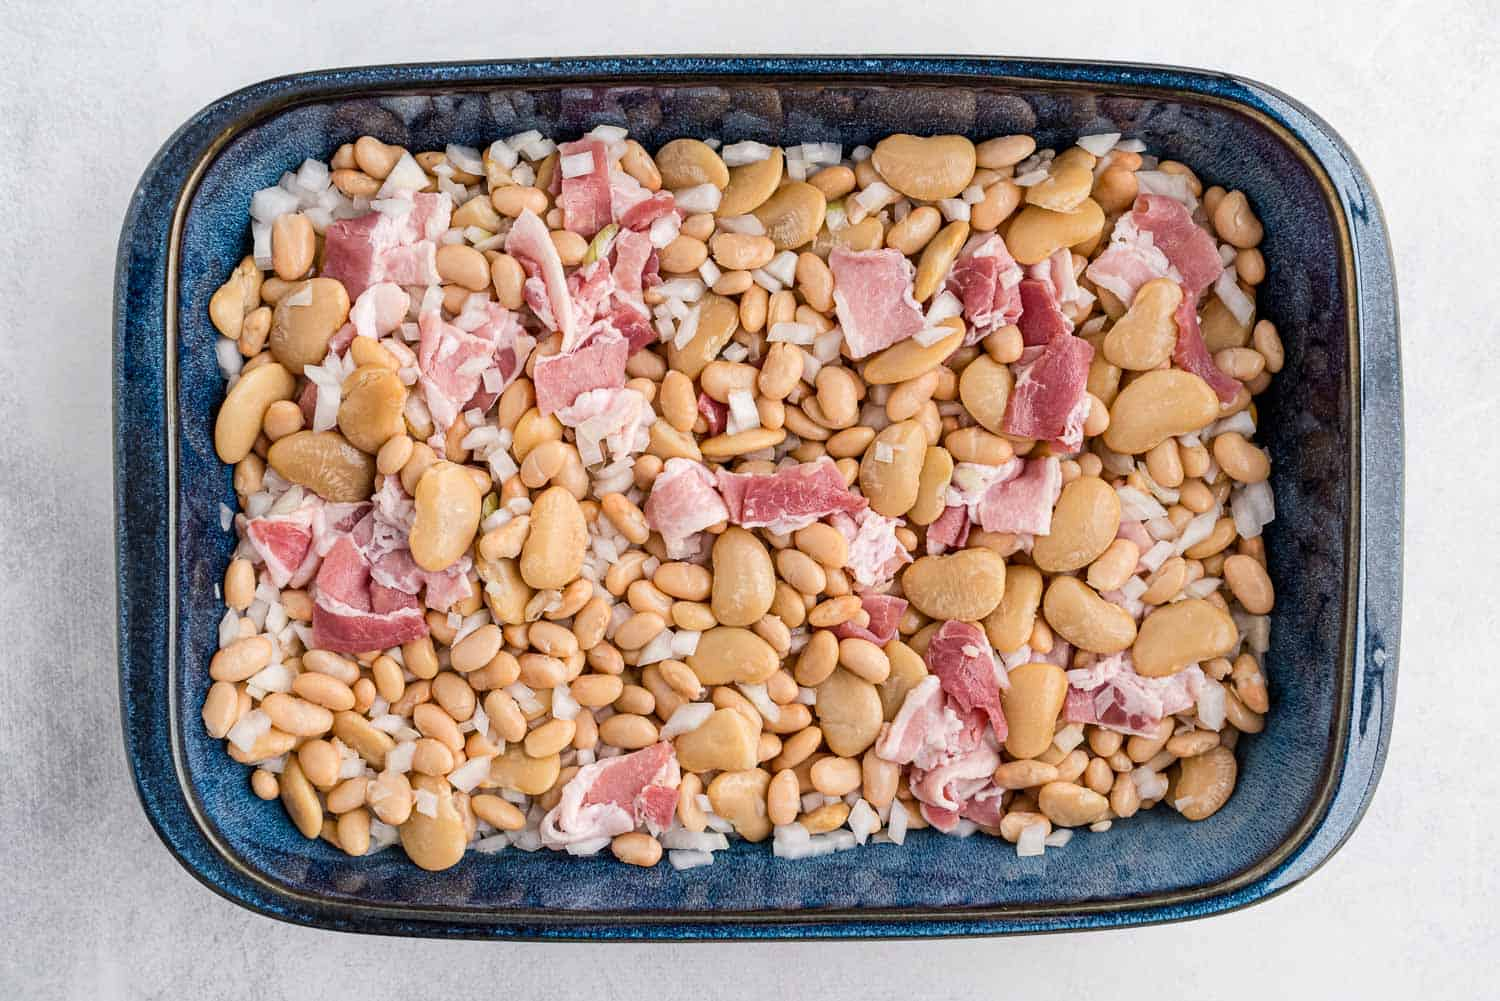 Beans, uncooked bacon, and onions in a baking dish.